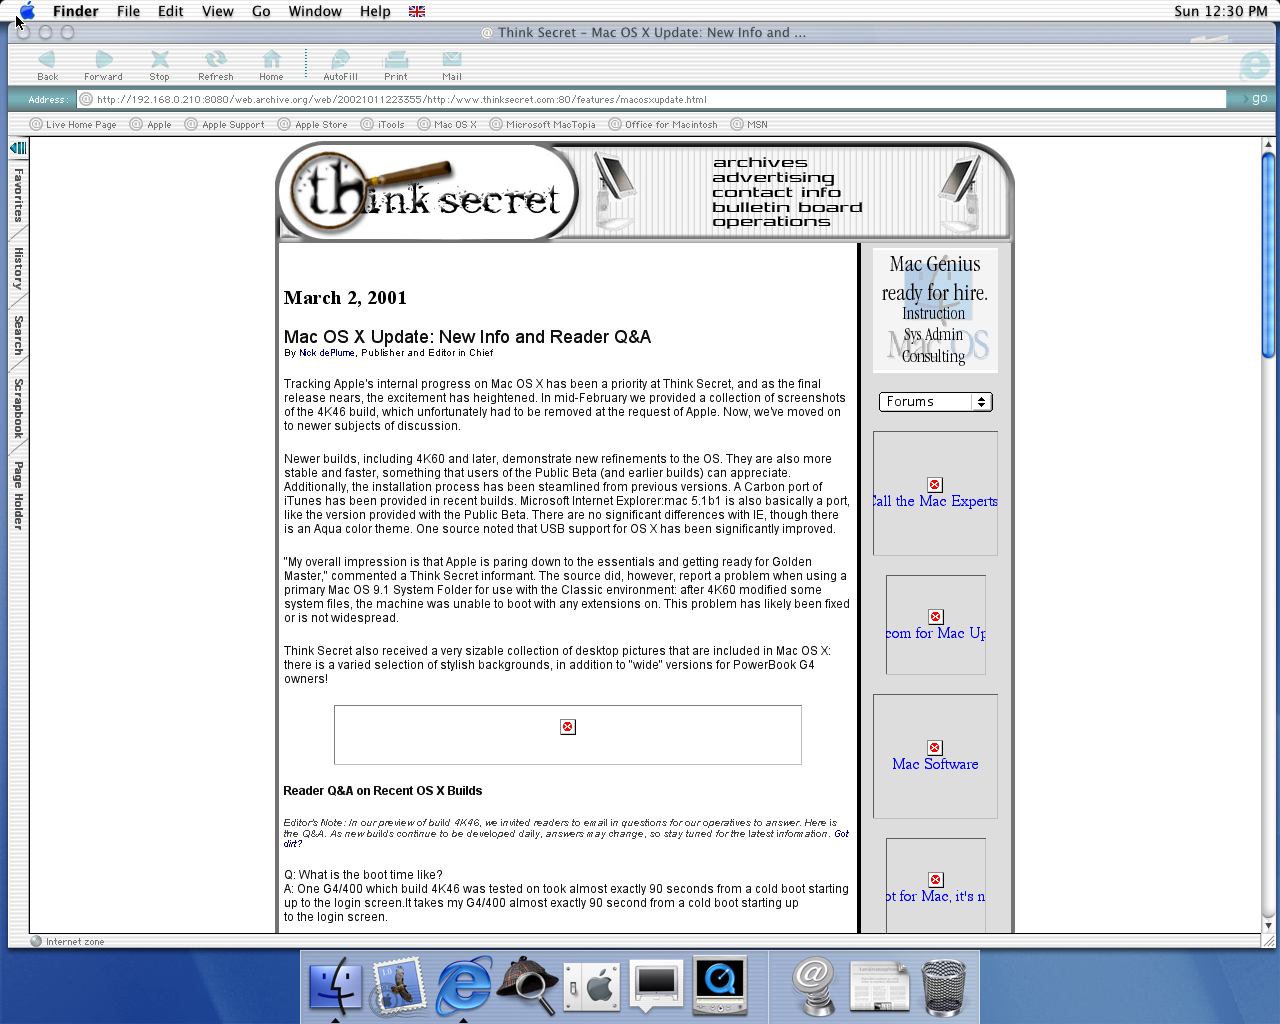 OS X 10.0 PPC with Microsoft Internet Explorer 5.1 for Mac Preview displaying a page from Think Secret archived at October 11, 2002 at 22:33:55